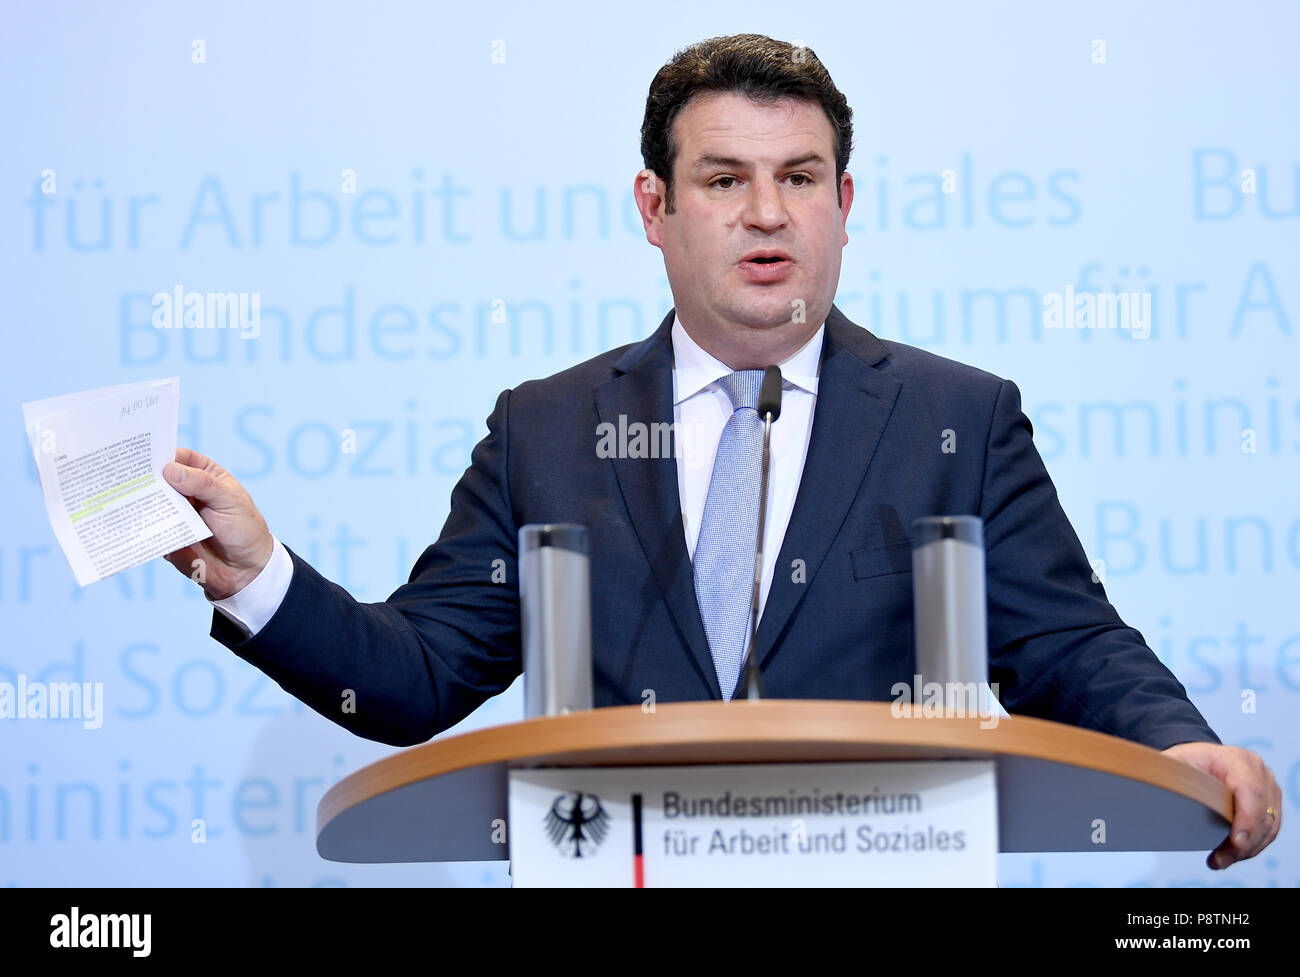 Berlin, Germany. 13th July, 2018. Minister for Work and Social Affairs from the Social Democratic Party (SPD), Hubertus Heil, giving a press conference for the outline of the new pension concept. Credit: Britta Pedersen/dpa-zentralbid/dpa/Alamy Live News - Stock Image